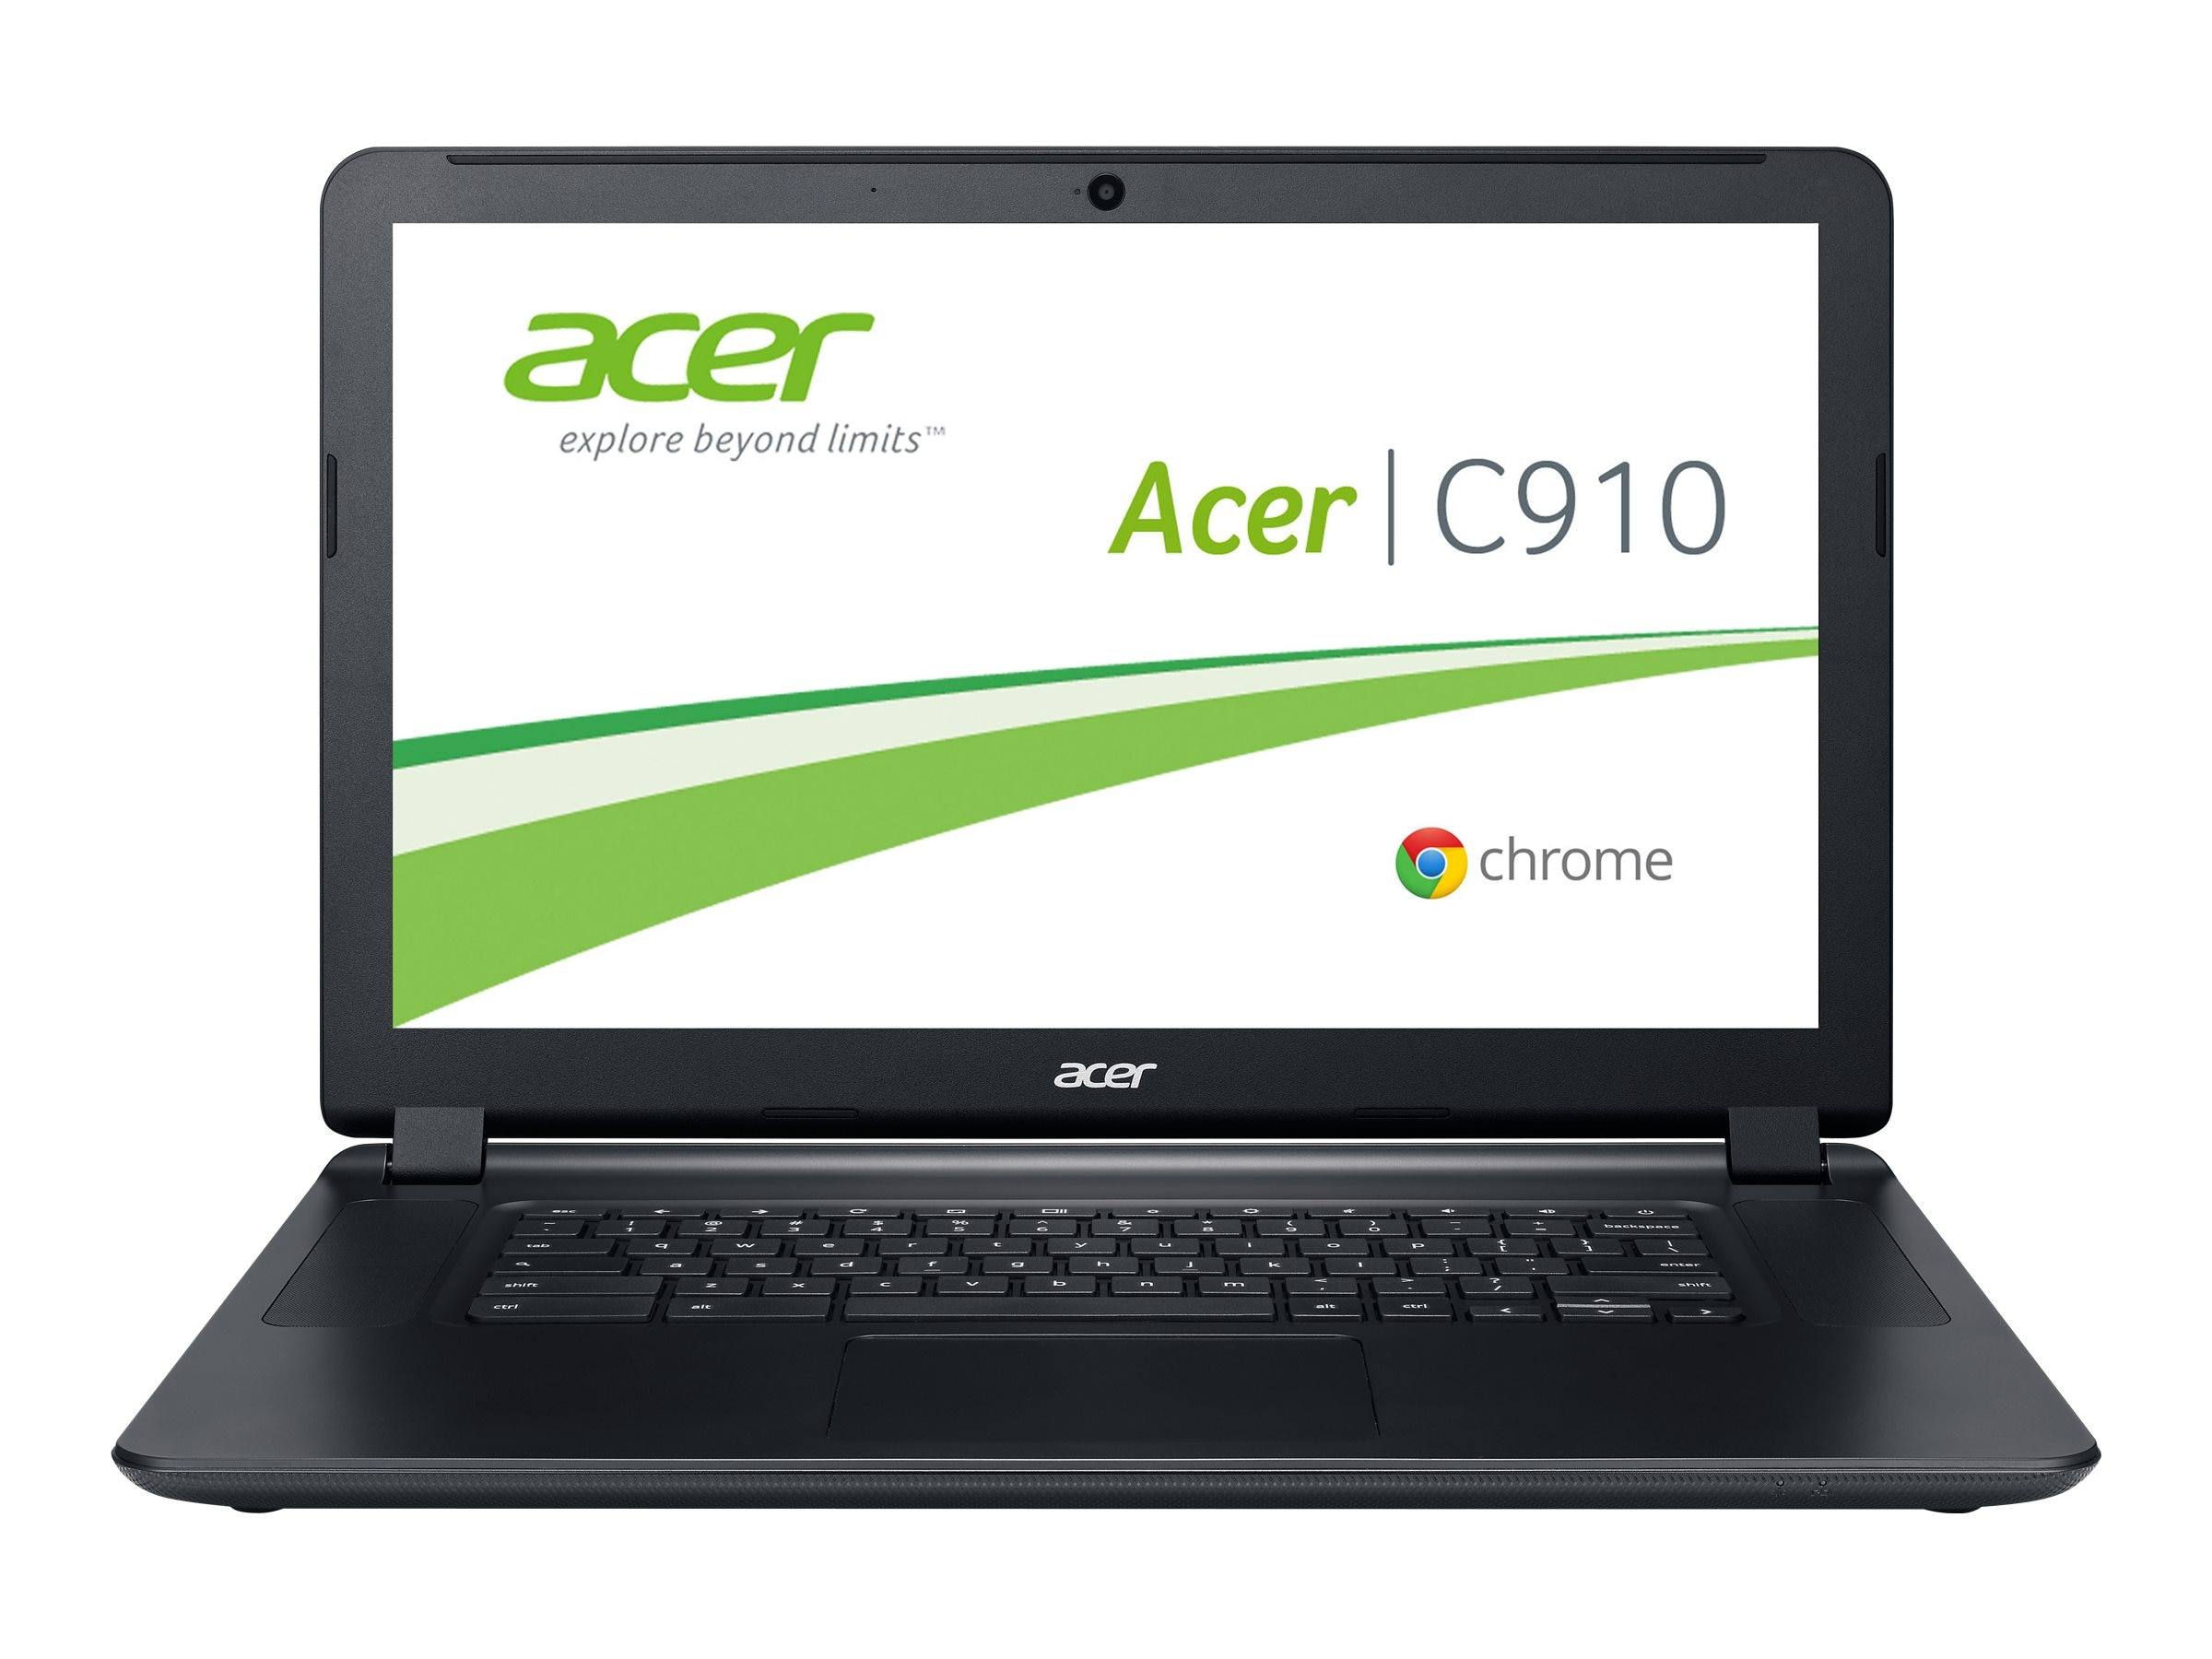 Acer Chromebook C910-C37P 1.5GHz Celeron 15.6in display, NX.EF3AA.004